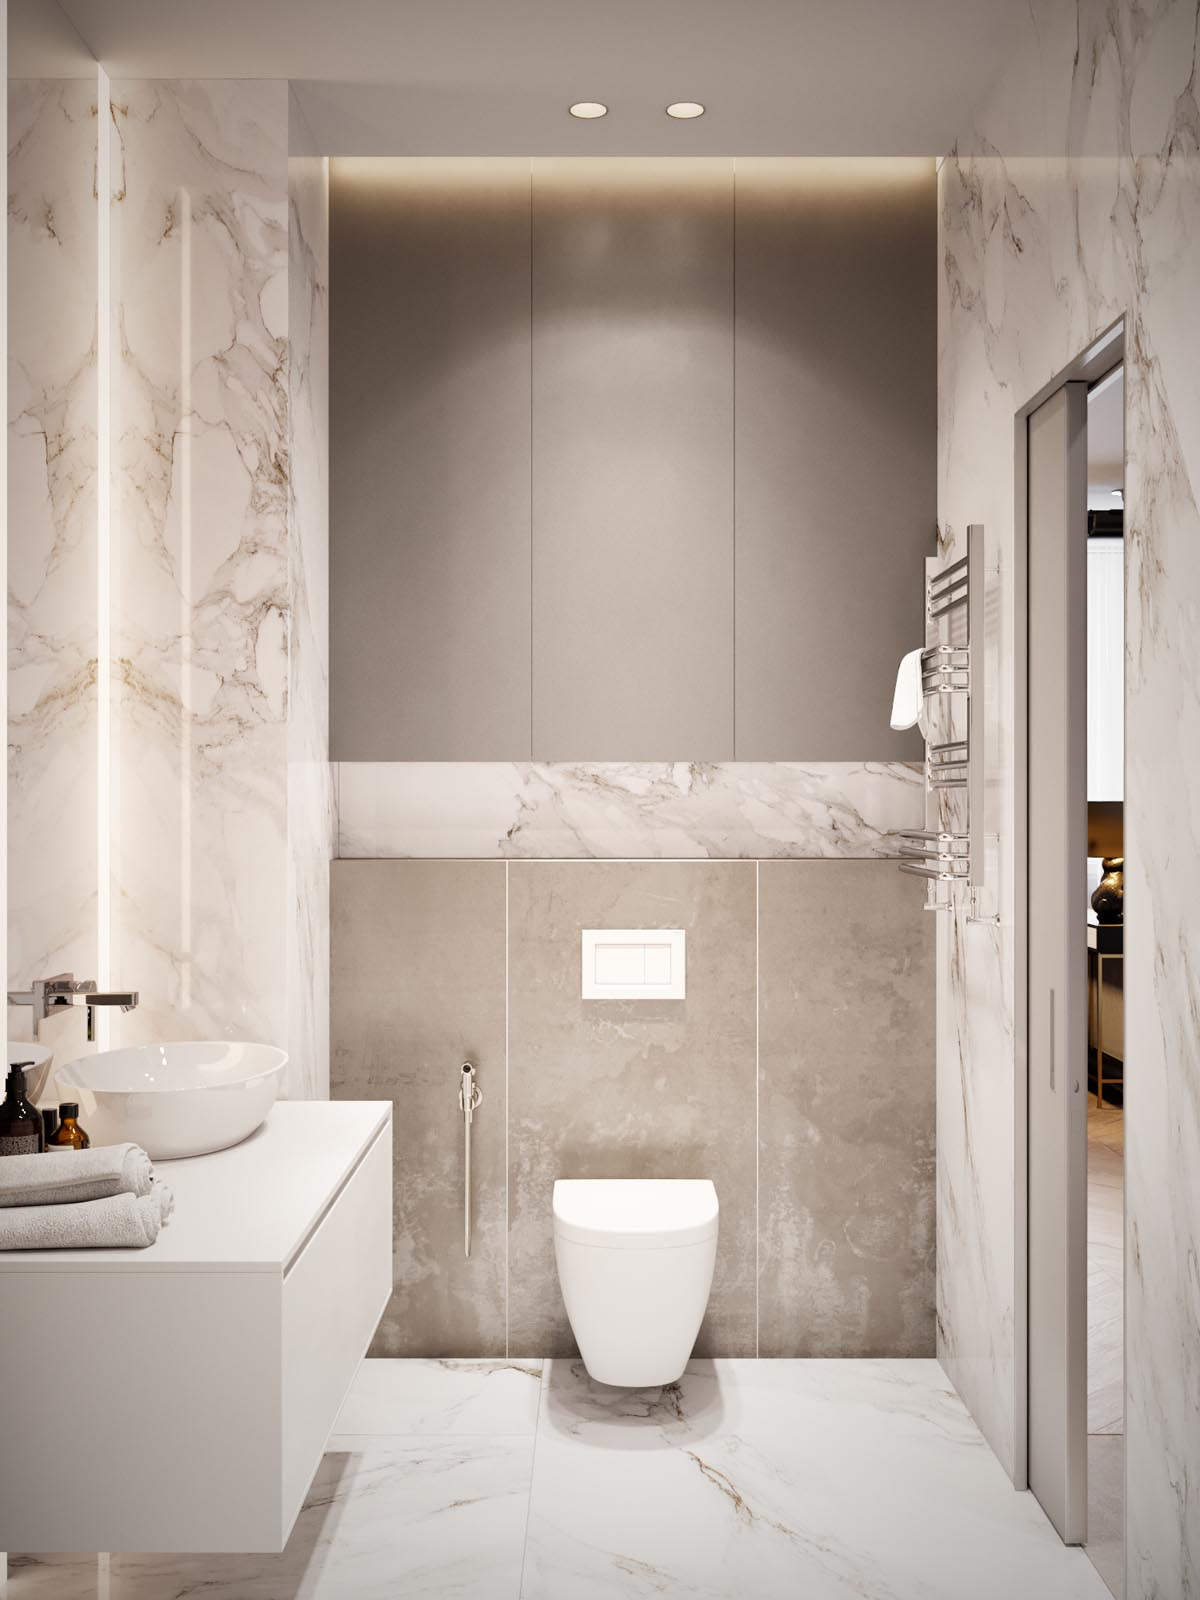 Home design under 60 square meters 3 examples that incorporate luxury in small spaces for Home decor interiors bathroom